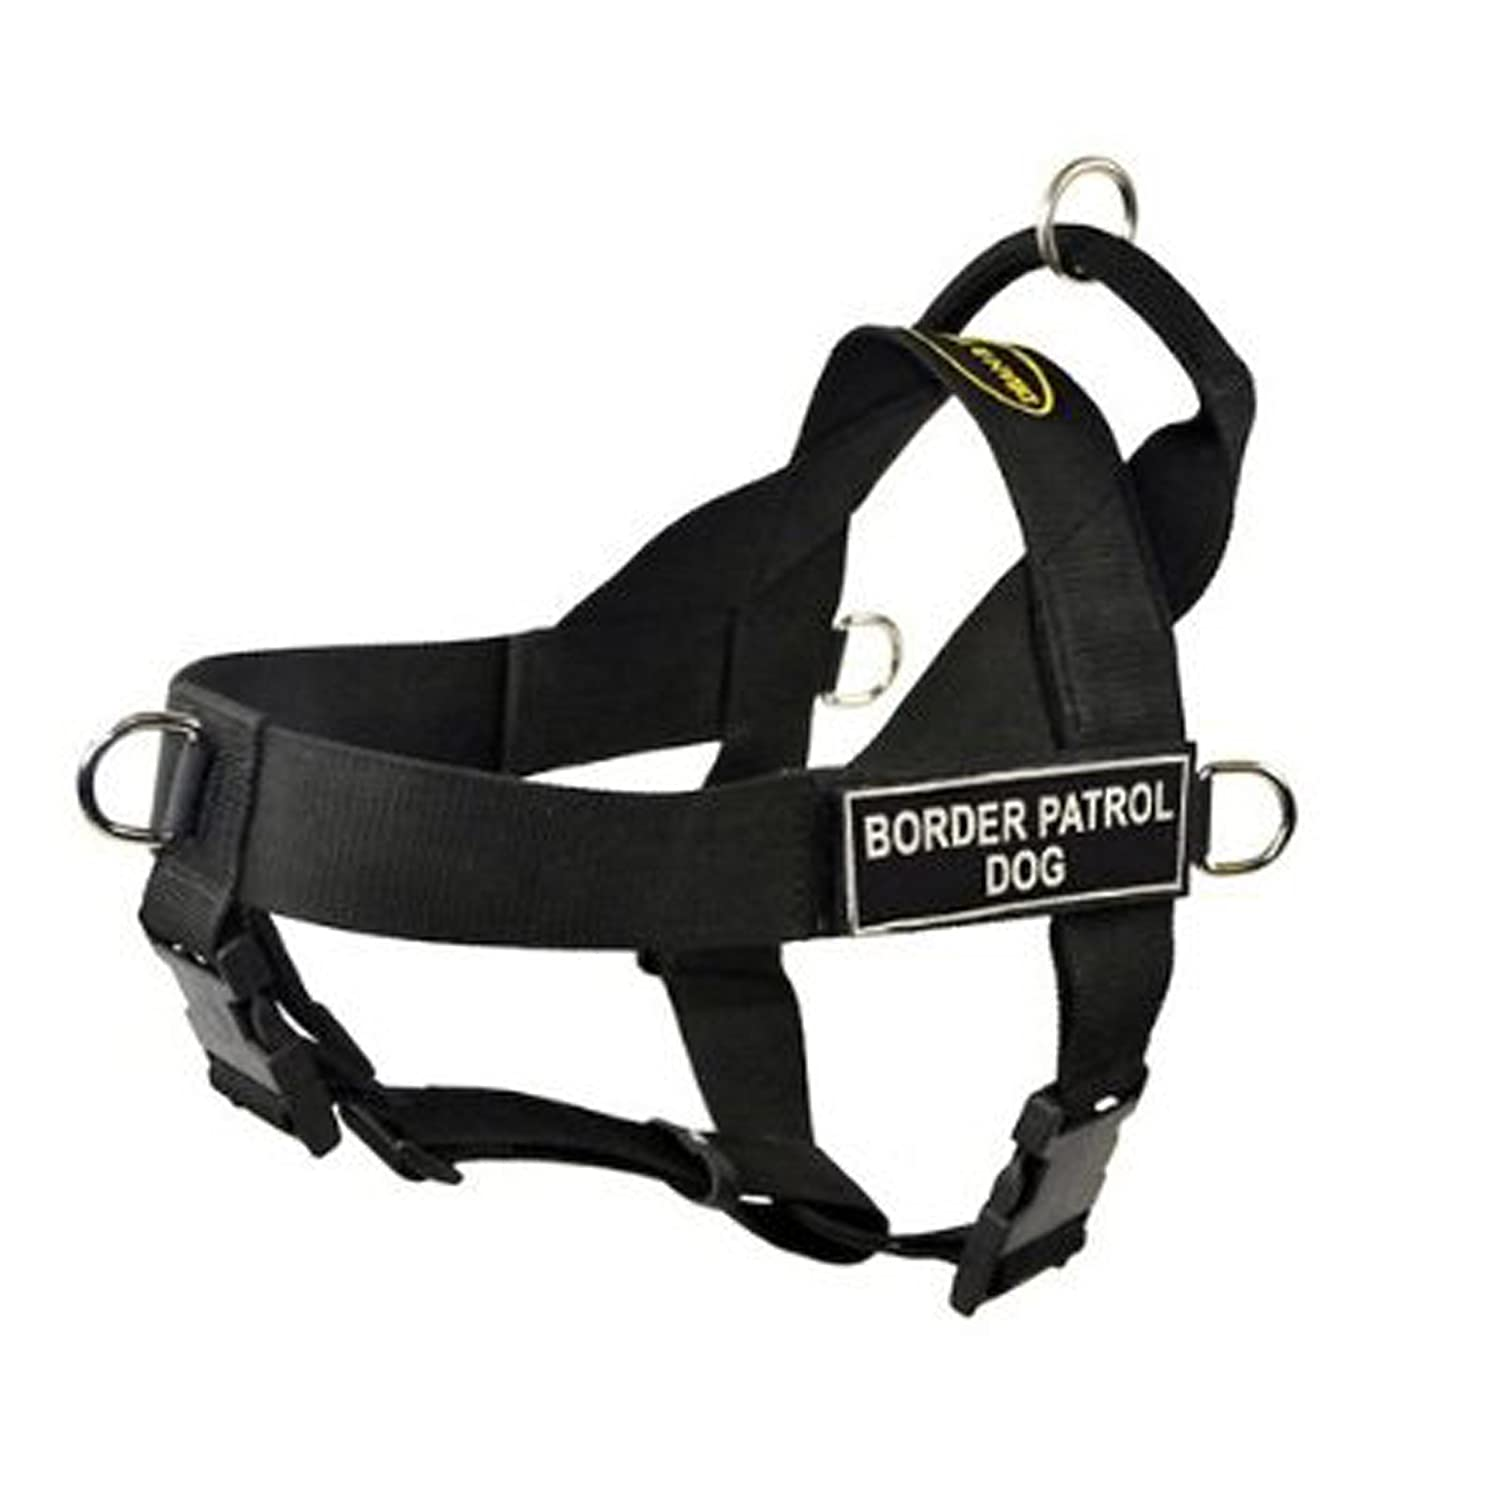 Dean & Tyler Universal No Pull Dog Harness, Border Patrol Dog, Black, Medium, Fits Girth Size  66cm to 81cm